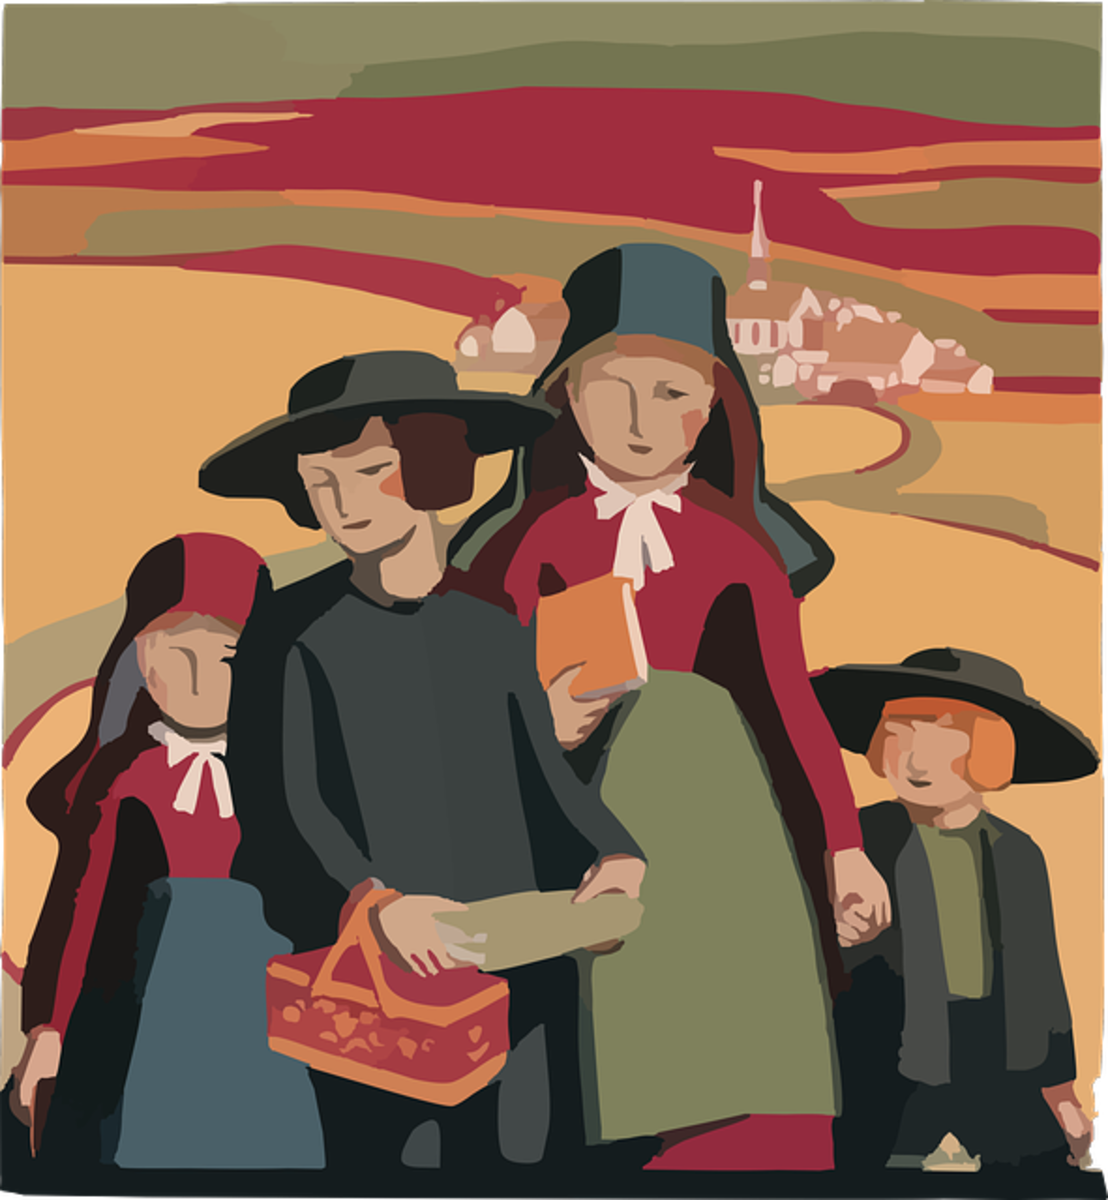 Family and Faith are cornerstones of value in the Amish family.